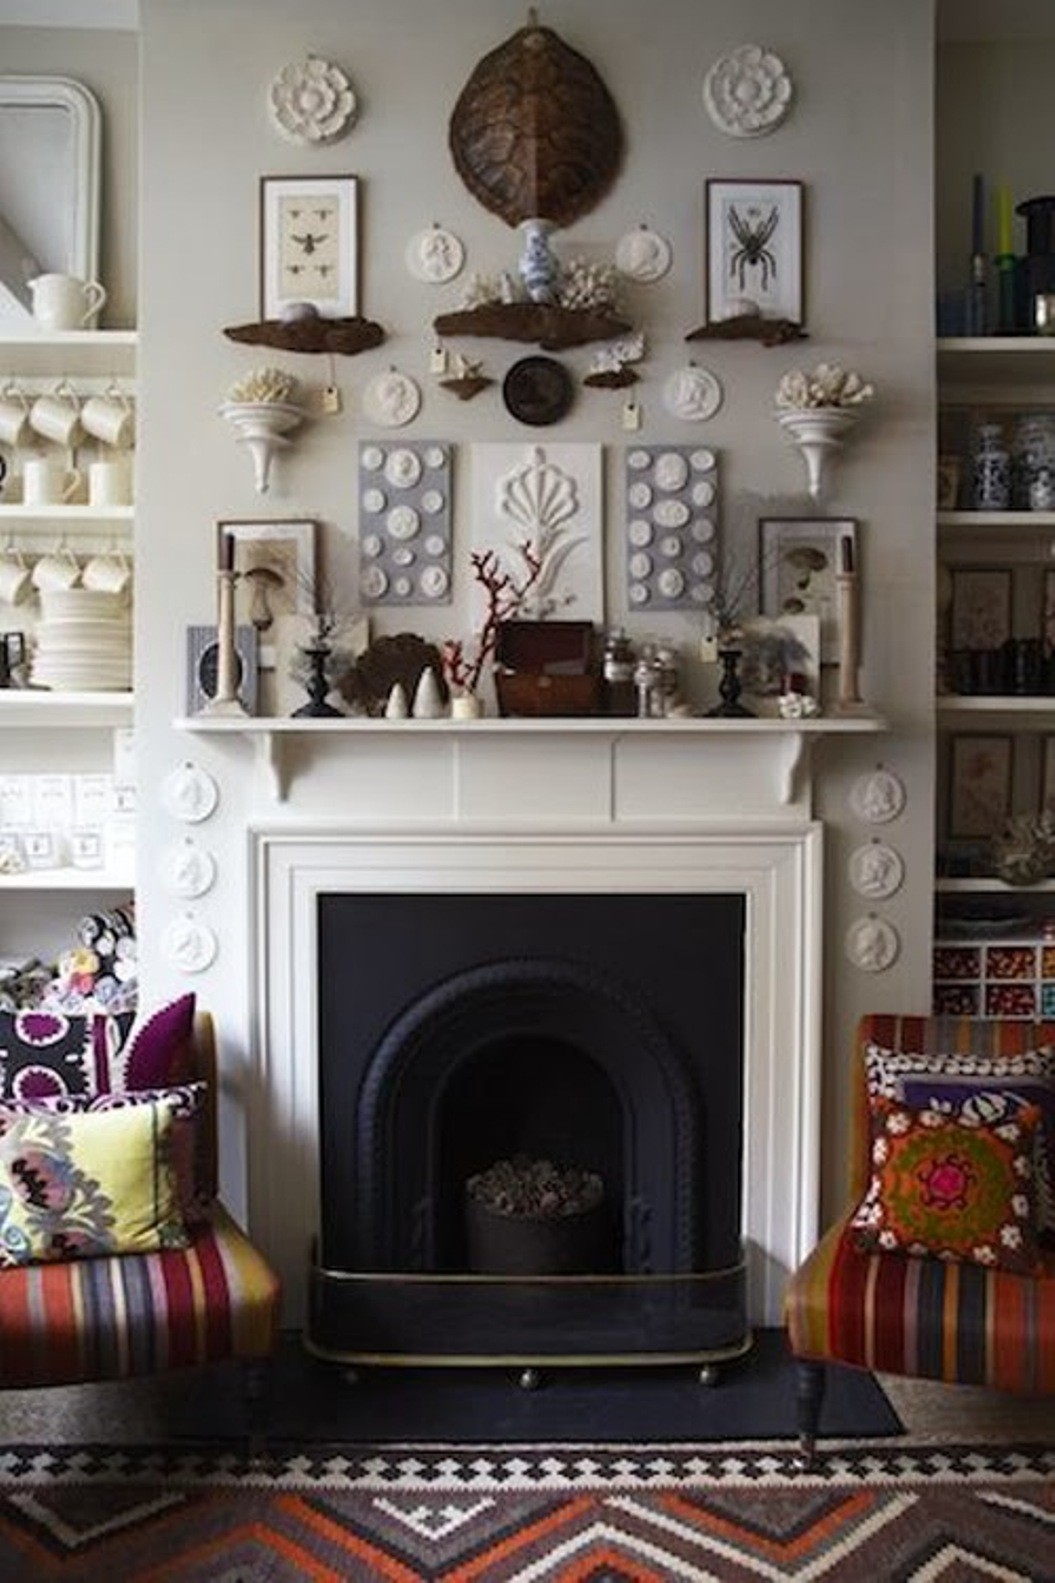 How to Decorate Above a Fireplace